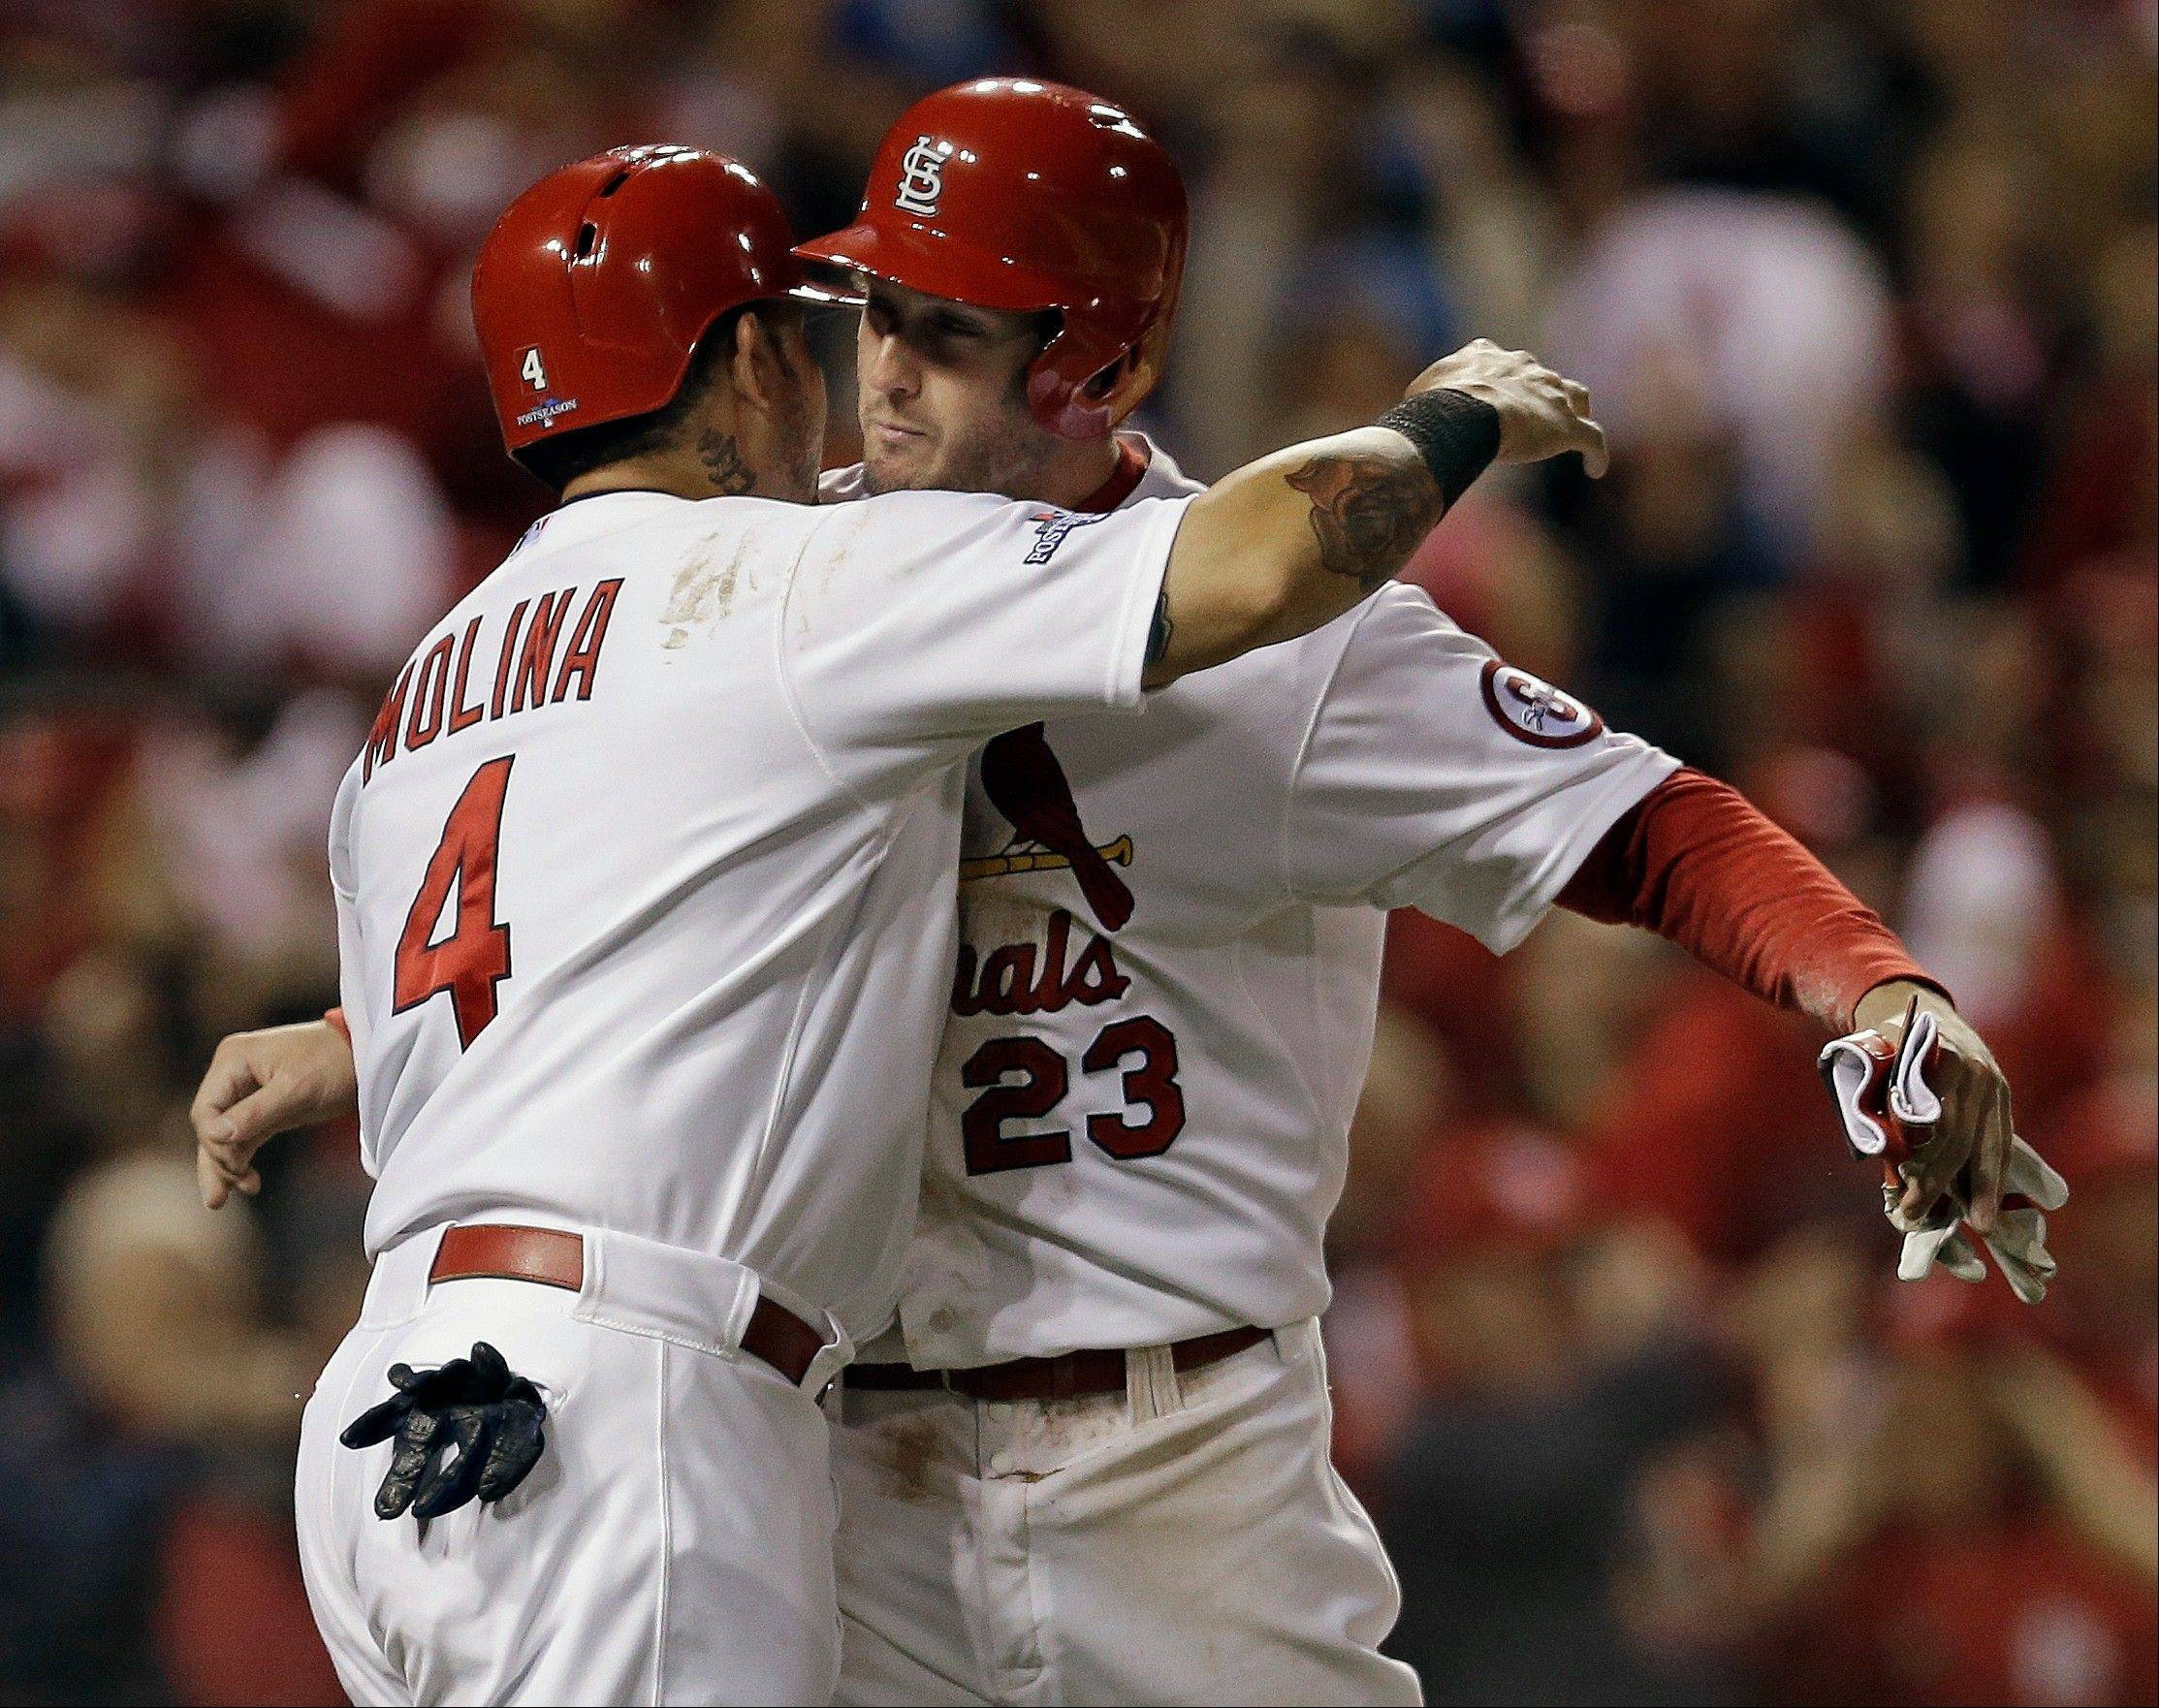 The Cardinals� David Freese and Yadier Molina celebrate after both scored on a hit by Shane Robinson during the third inning of Game 6 of the National League Championship Series against the Los Angeles Dodgers on Friday in St. Louis.